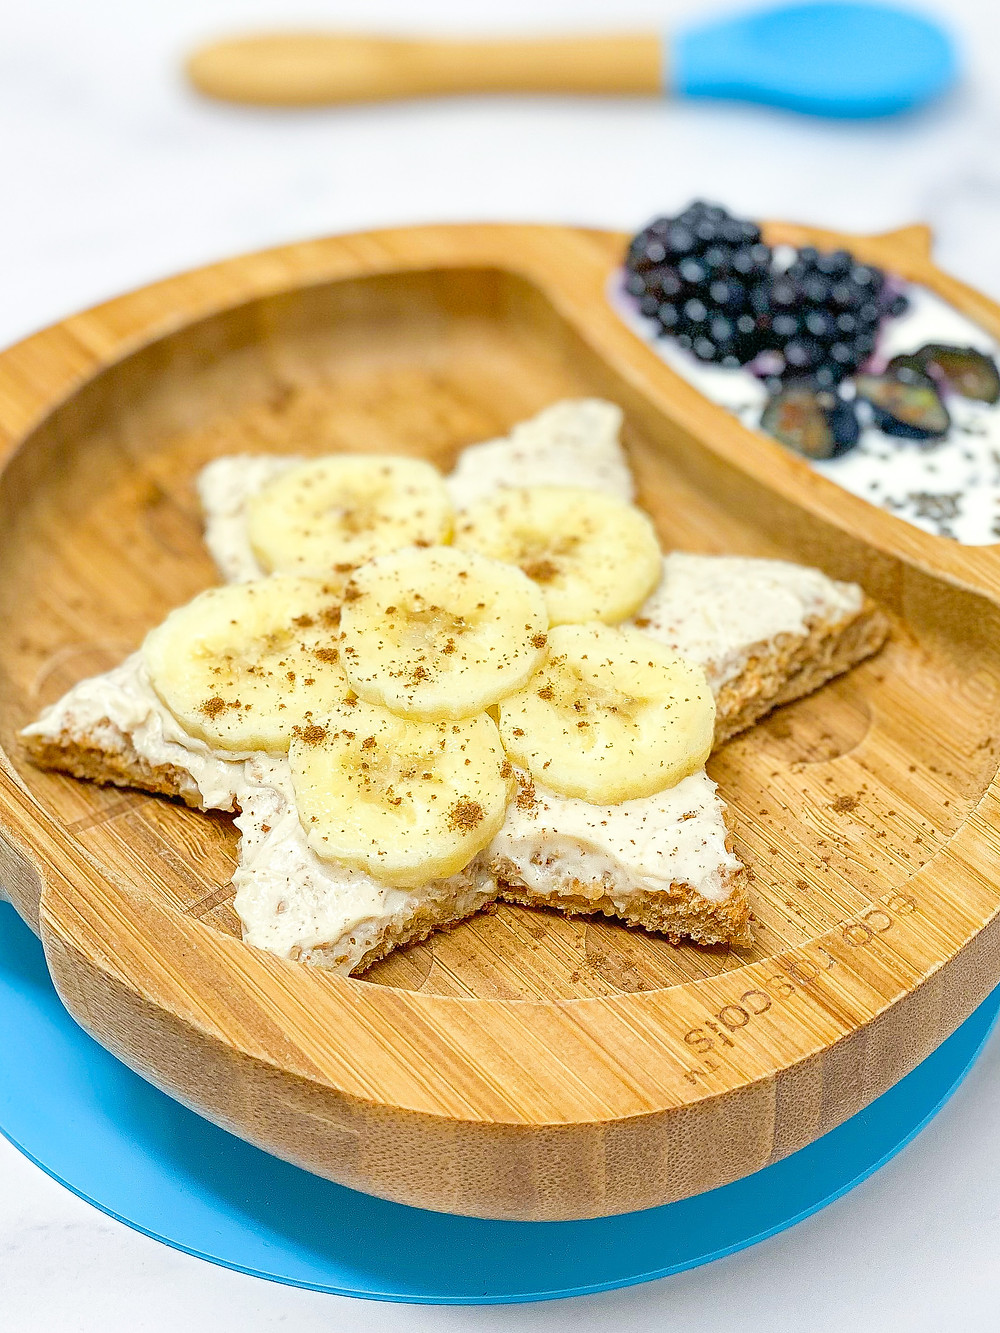 WHIPPED PEANUT BUTTER & BANANA TOAST in ladybird bamboo plate fromm Eco Rascals